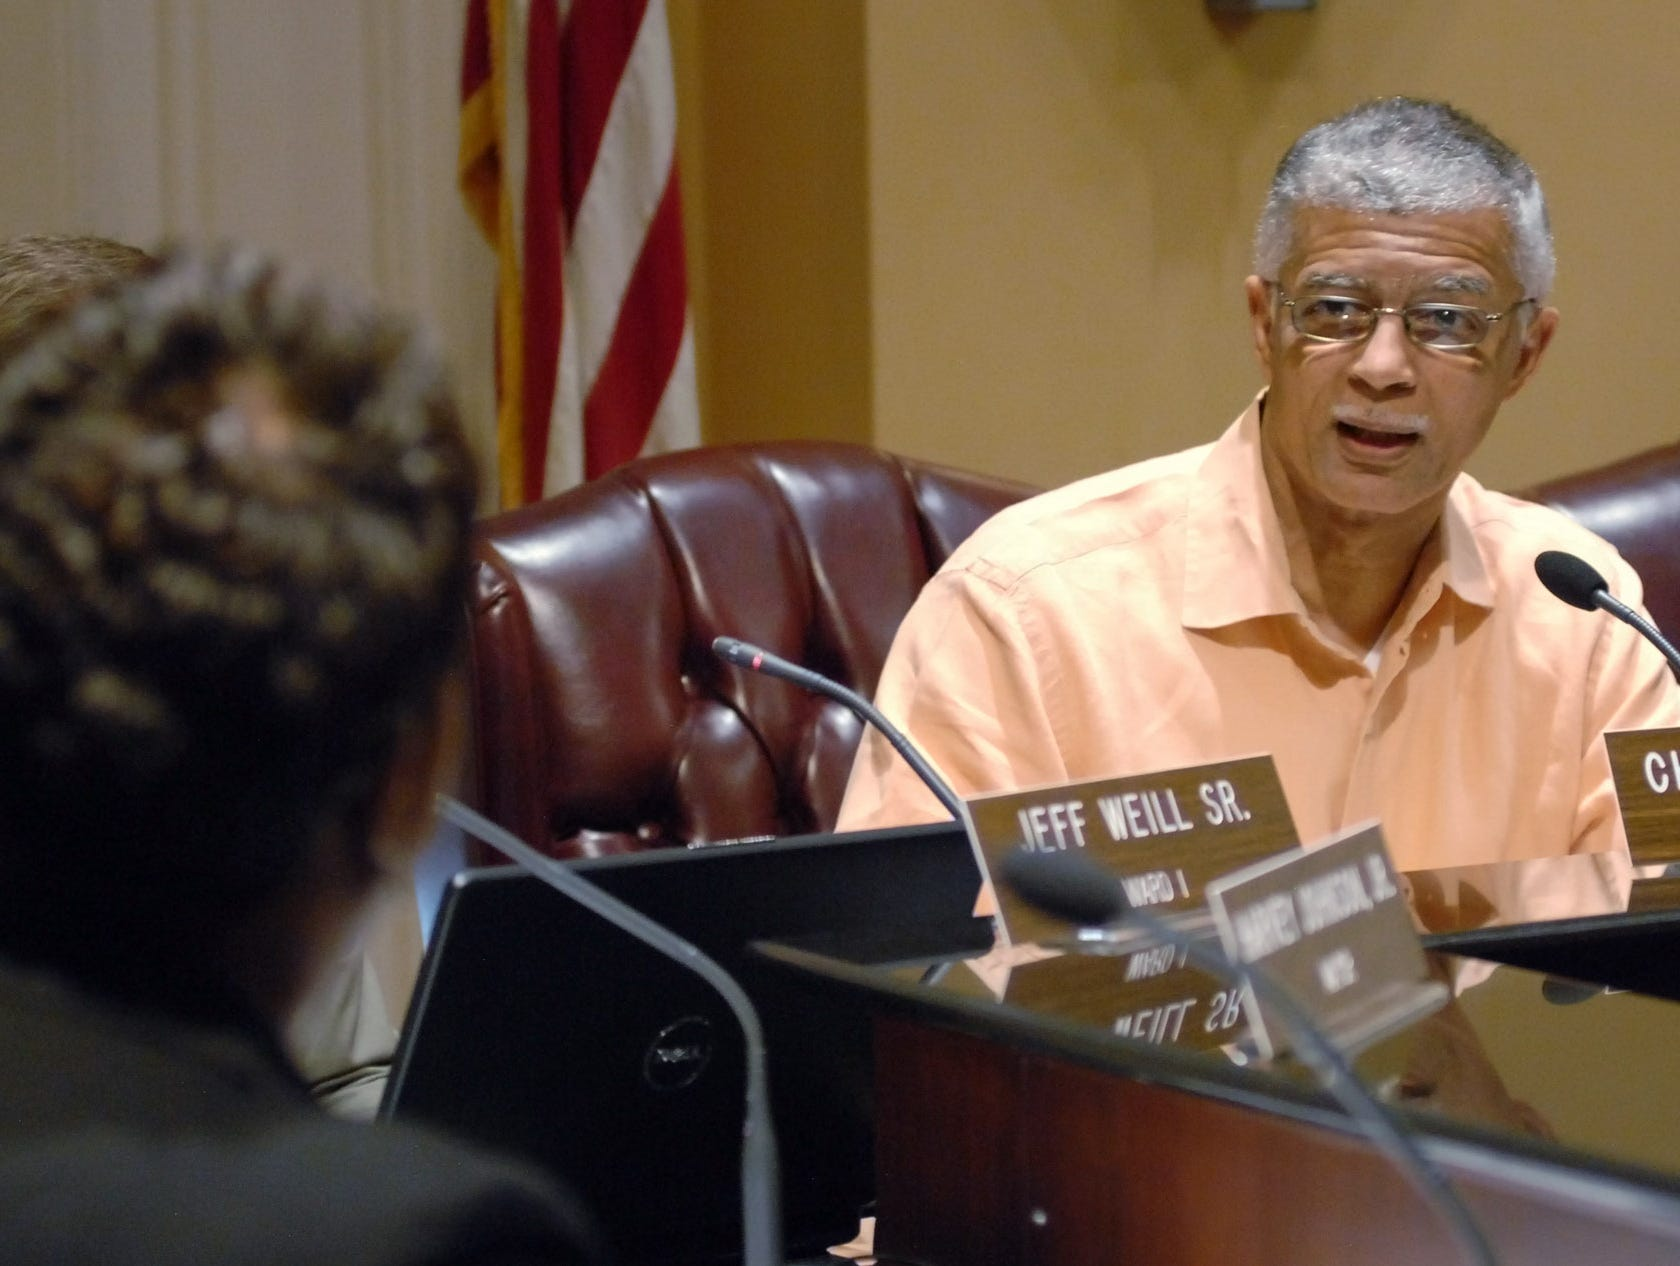 Ward 2 Jackson City Councilman Chokwe Lumumba (right) questions school board appointee, Monica Gilmore-Love (left) during her confirmation hearing Tuesday afternoon at Jackson City Hall.  Love was confirmed by the council by a vote of 4-1 with Lumumba casting the lone dissenting vote.